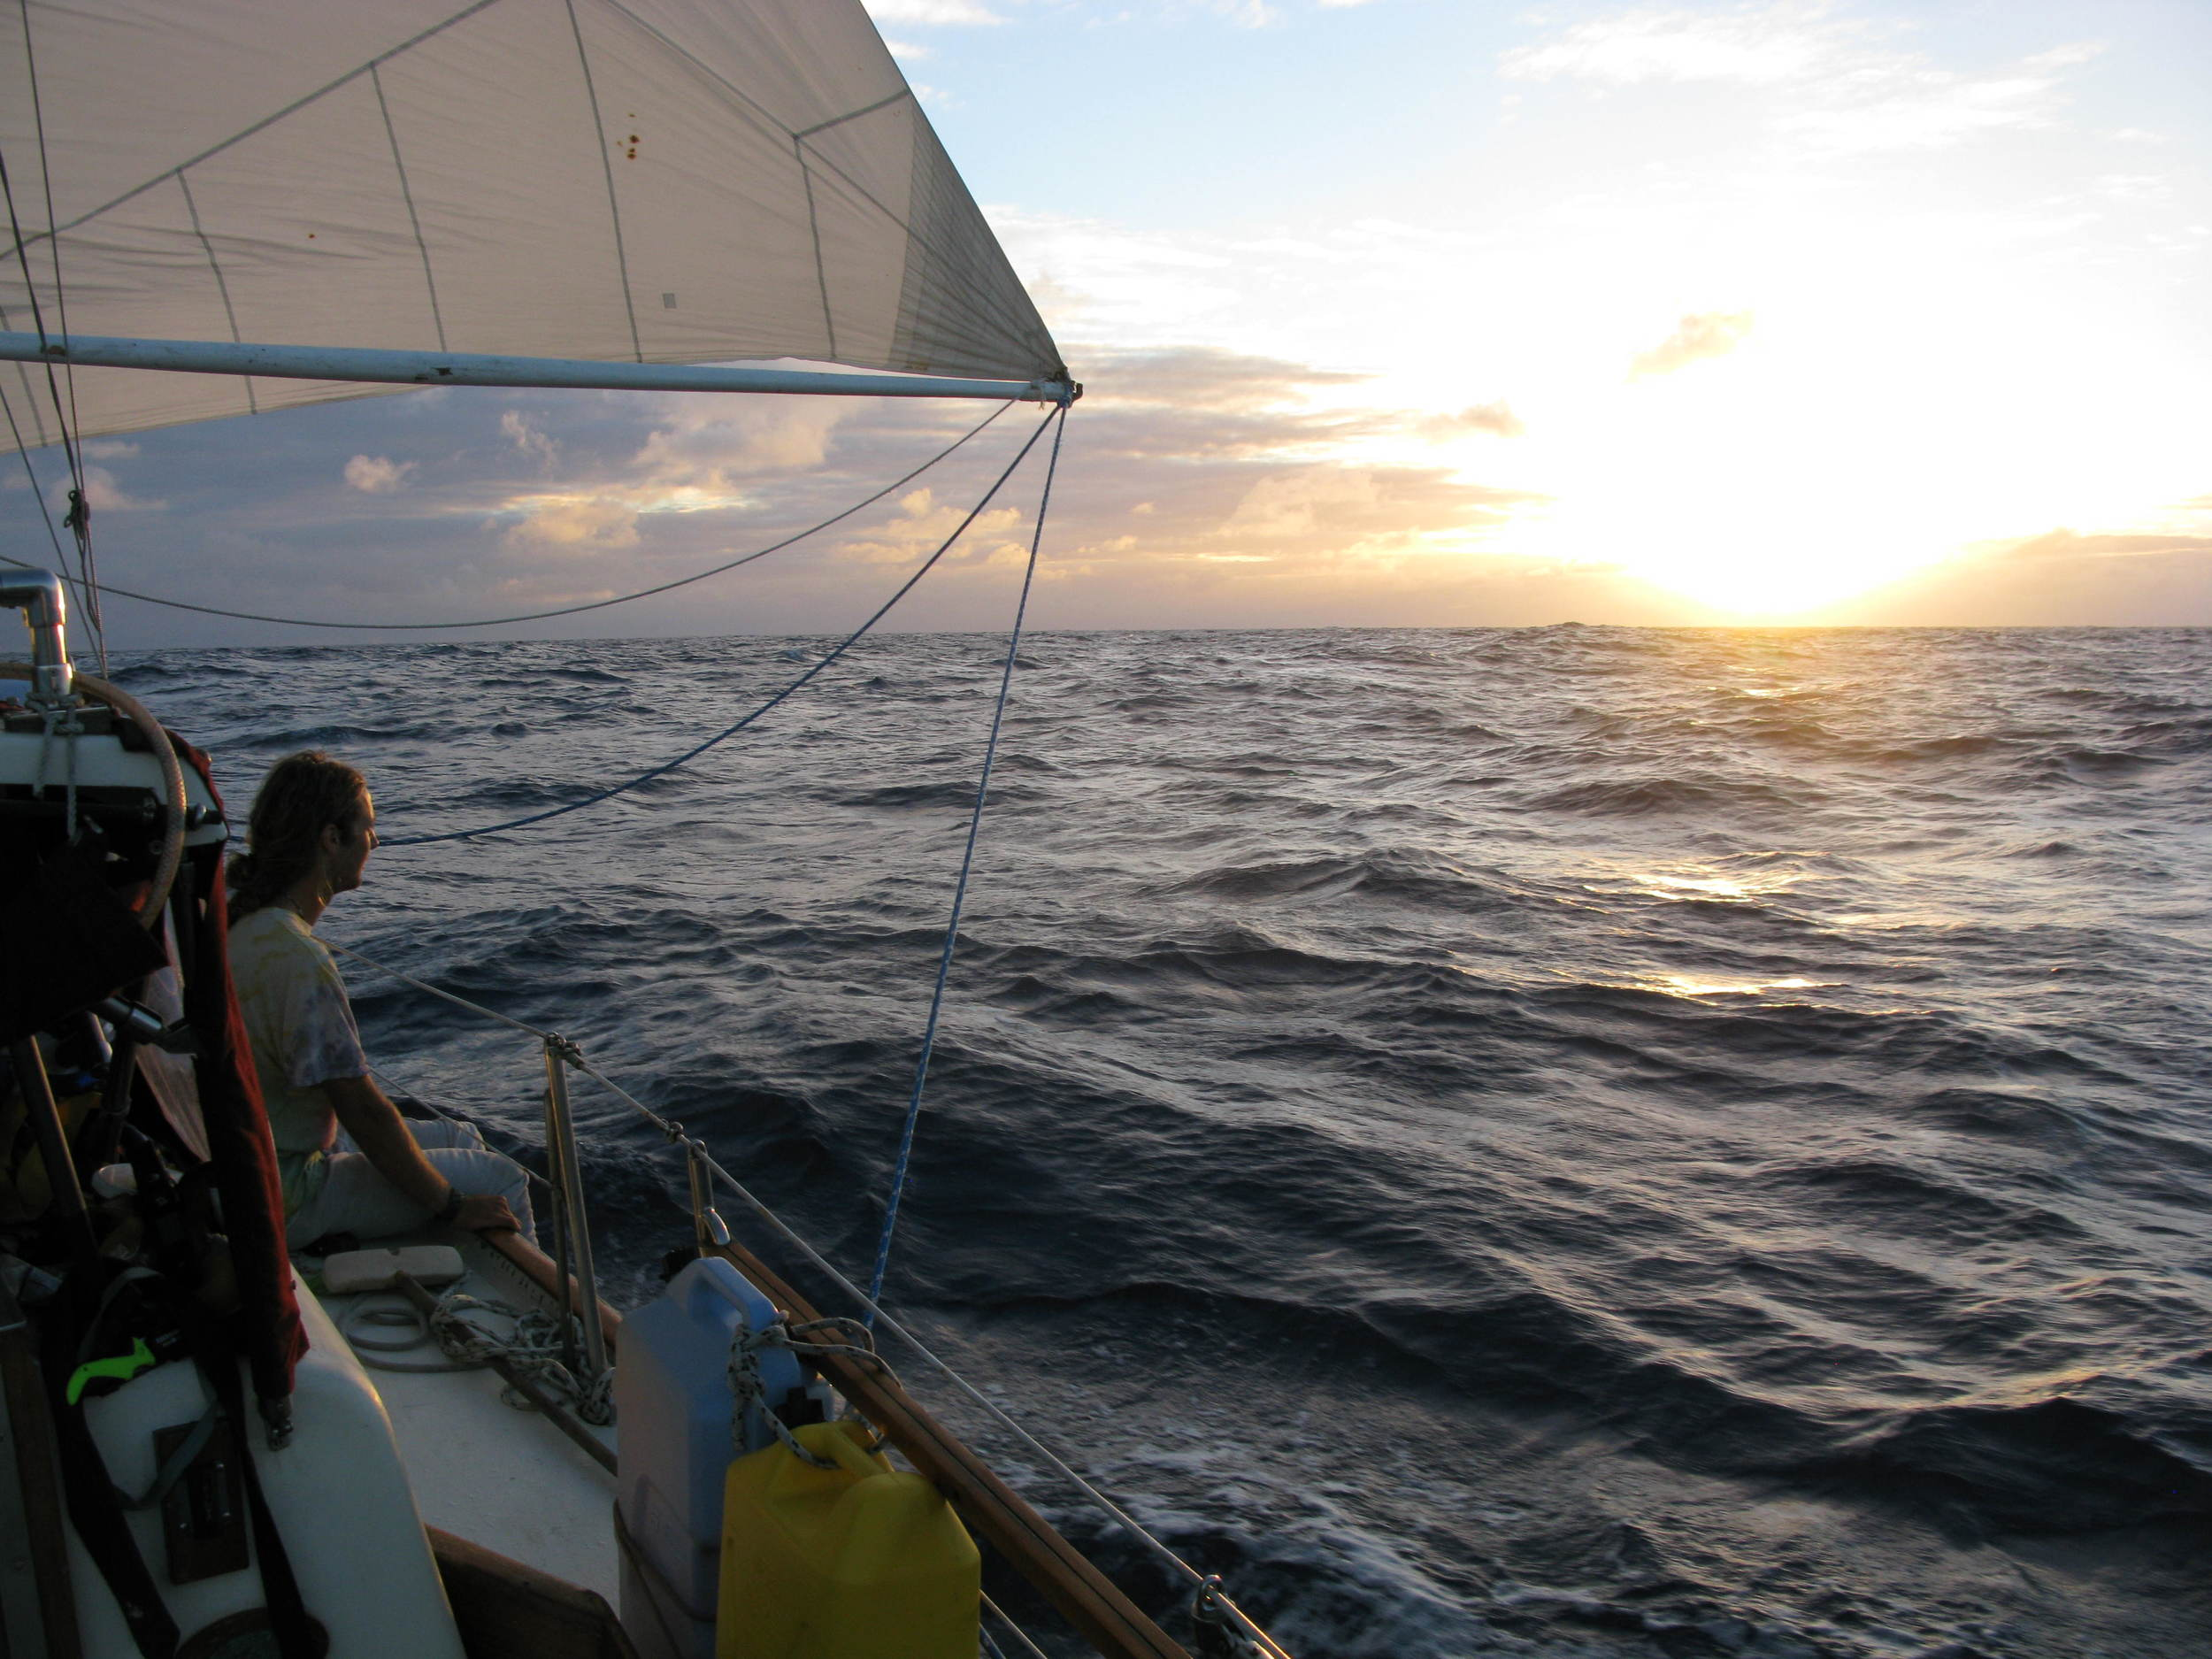 Sunset in the middle of the Pacific.